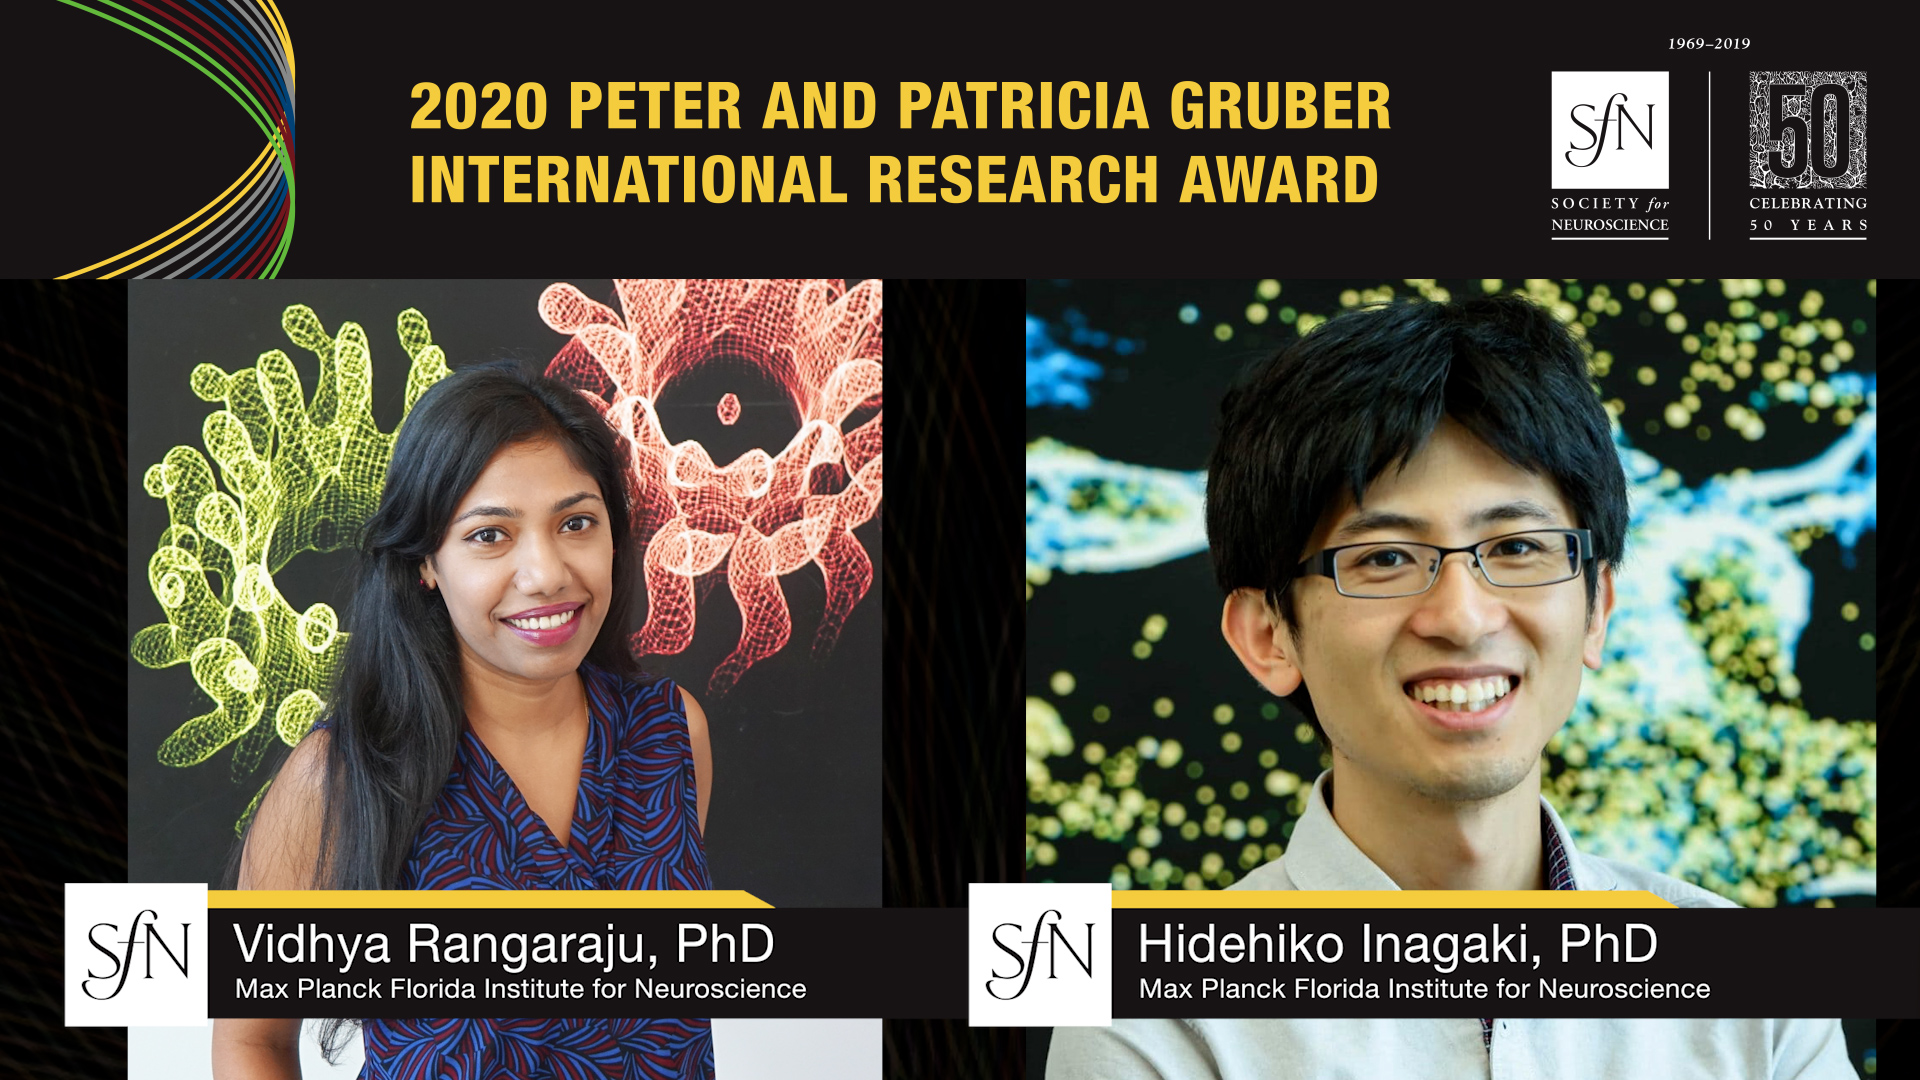 2020 Peter and Patricia Gruber International Research Award winners graphic, images of Vidhya Rangaraju, PhD Max Planck Florida Institute for Neuroscience, Hidehiko Inagaki, PhD Max Planck Florida Institute for Neuroscience